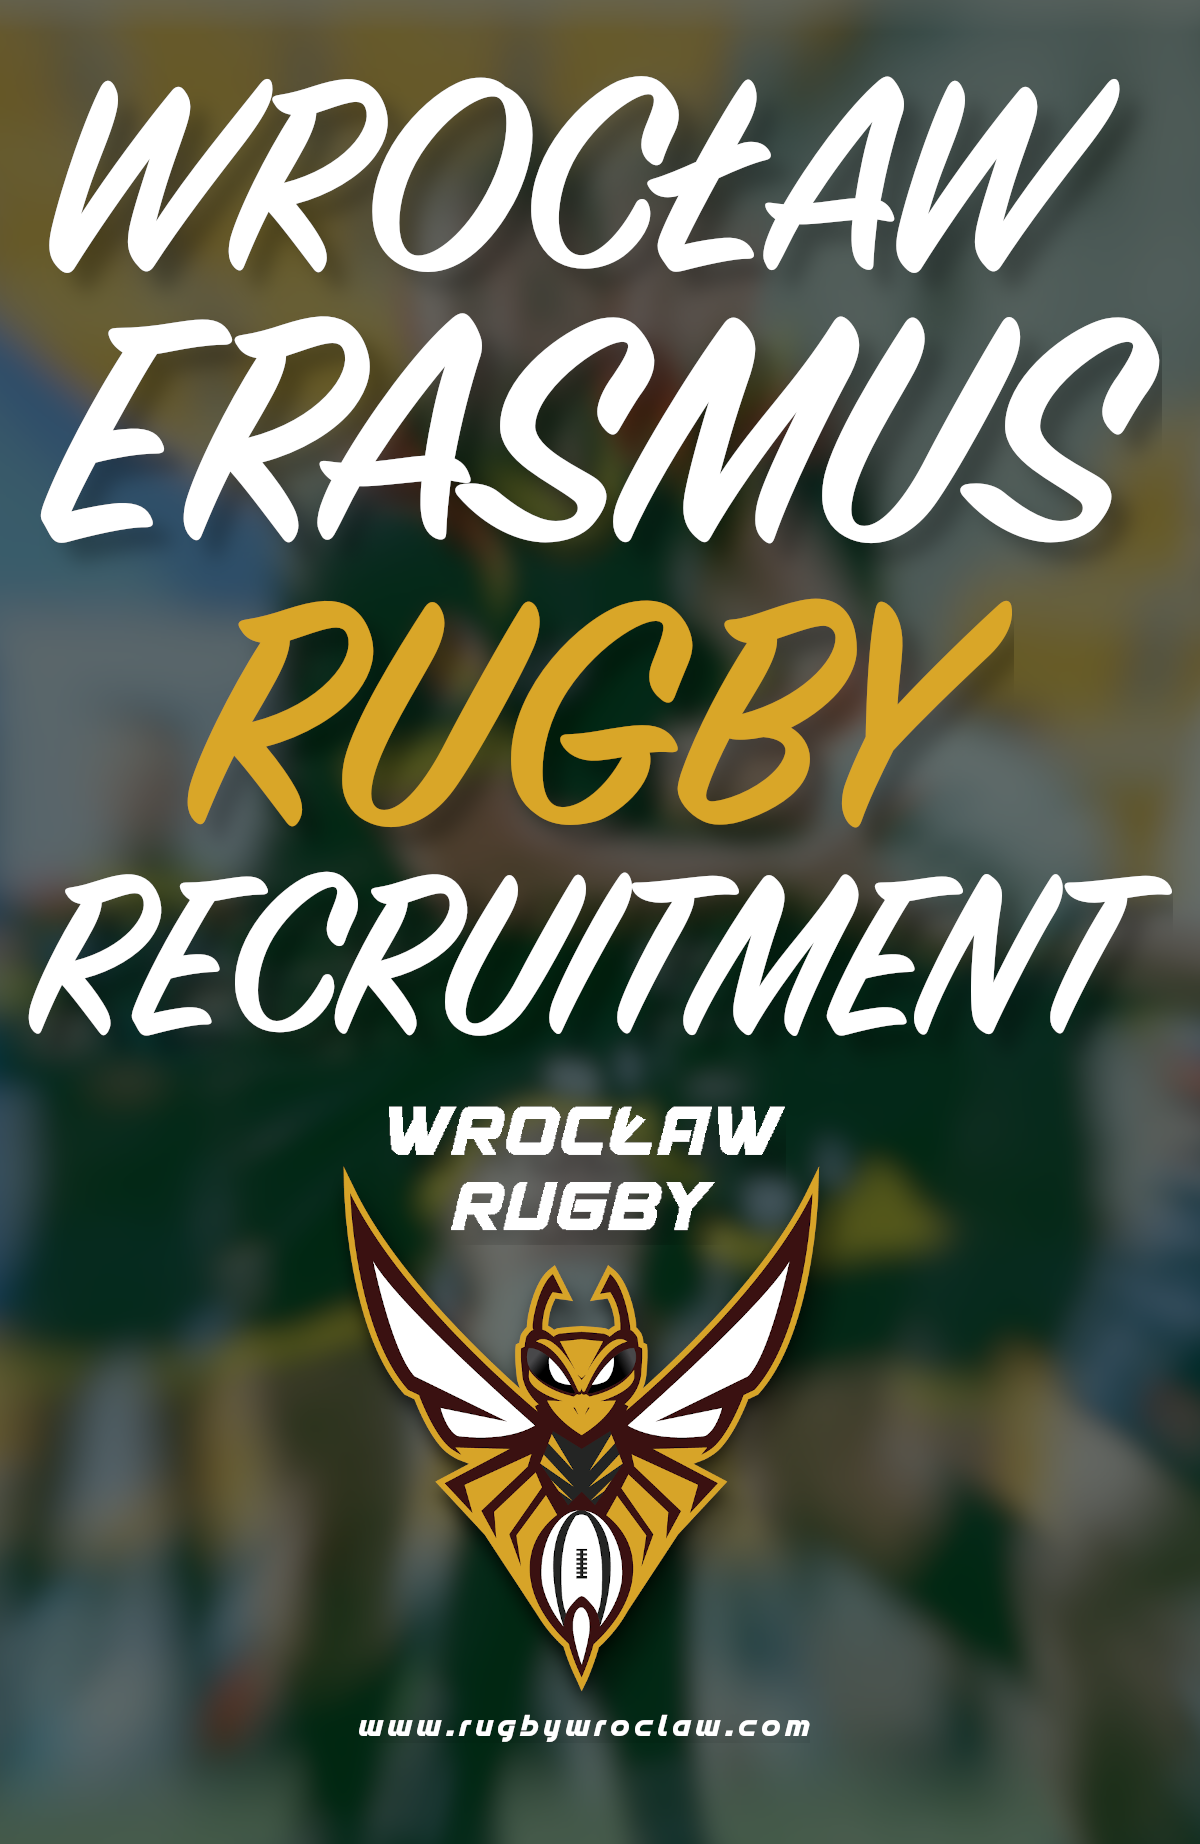 Erasmus Rugby recruitment